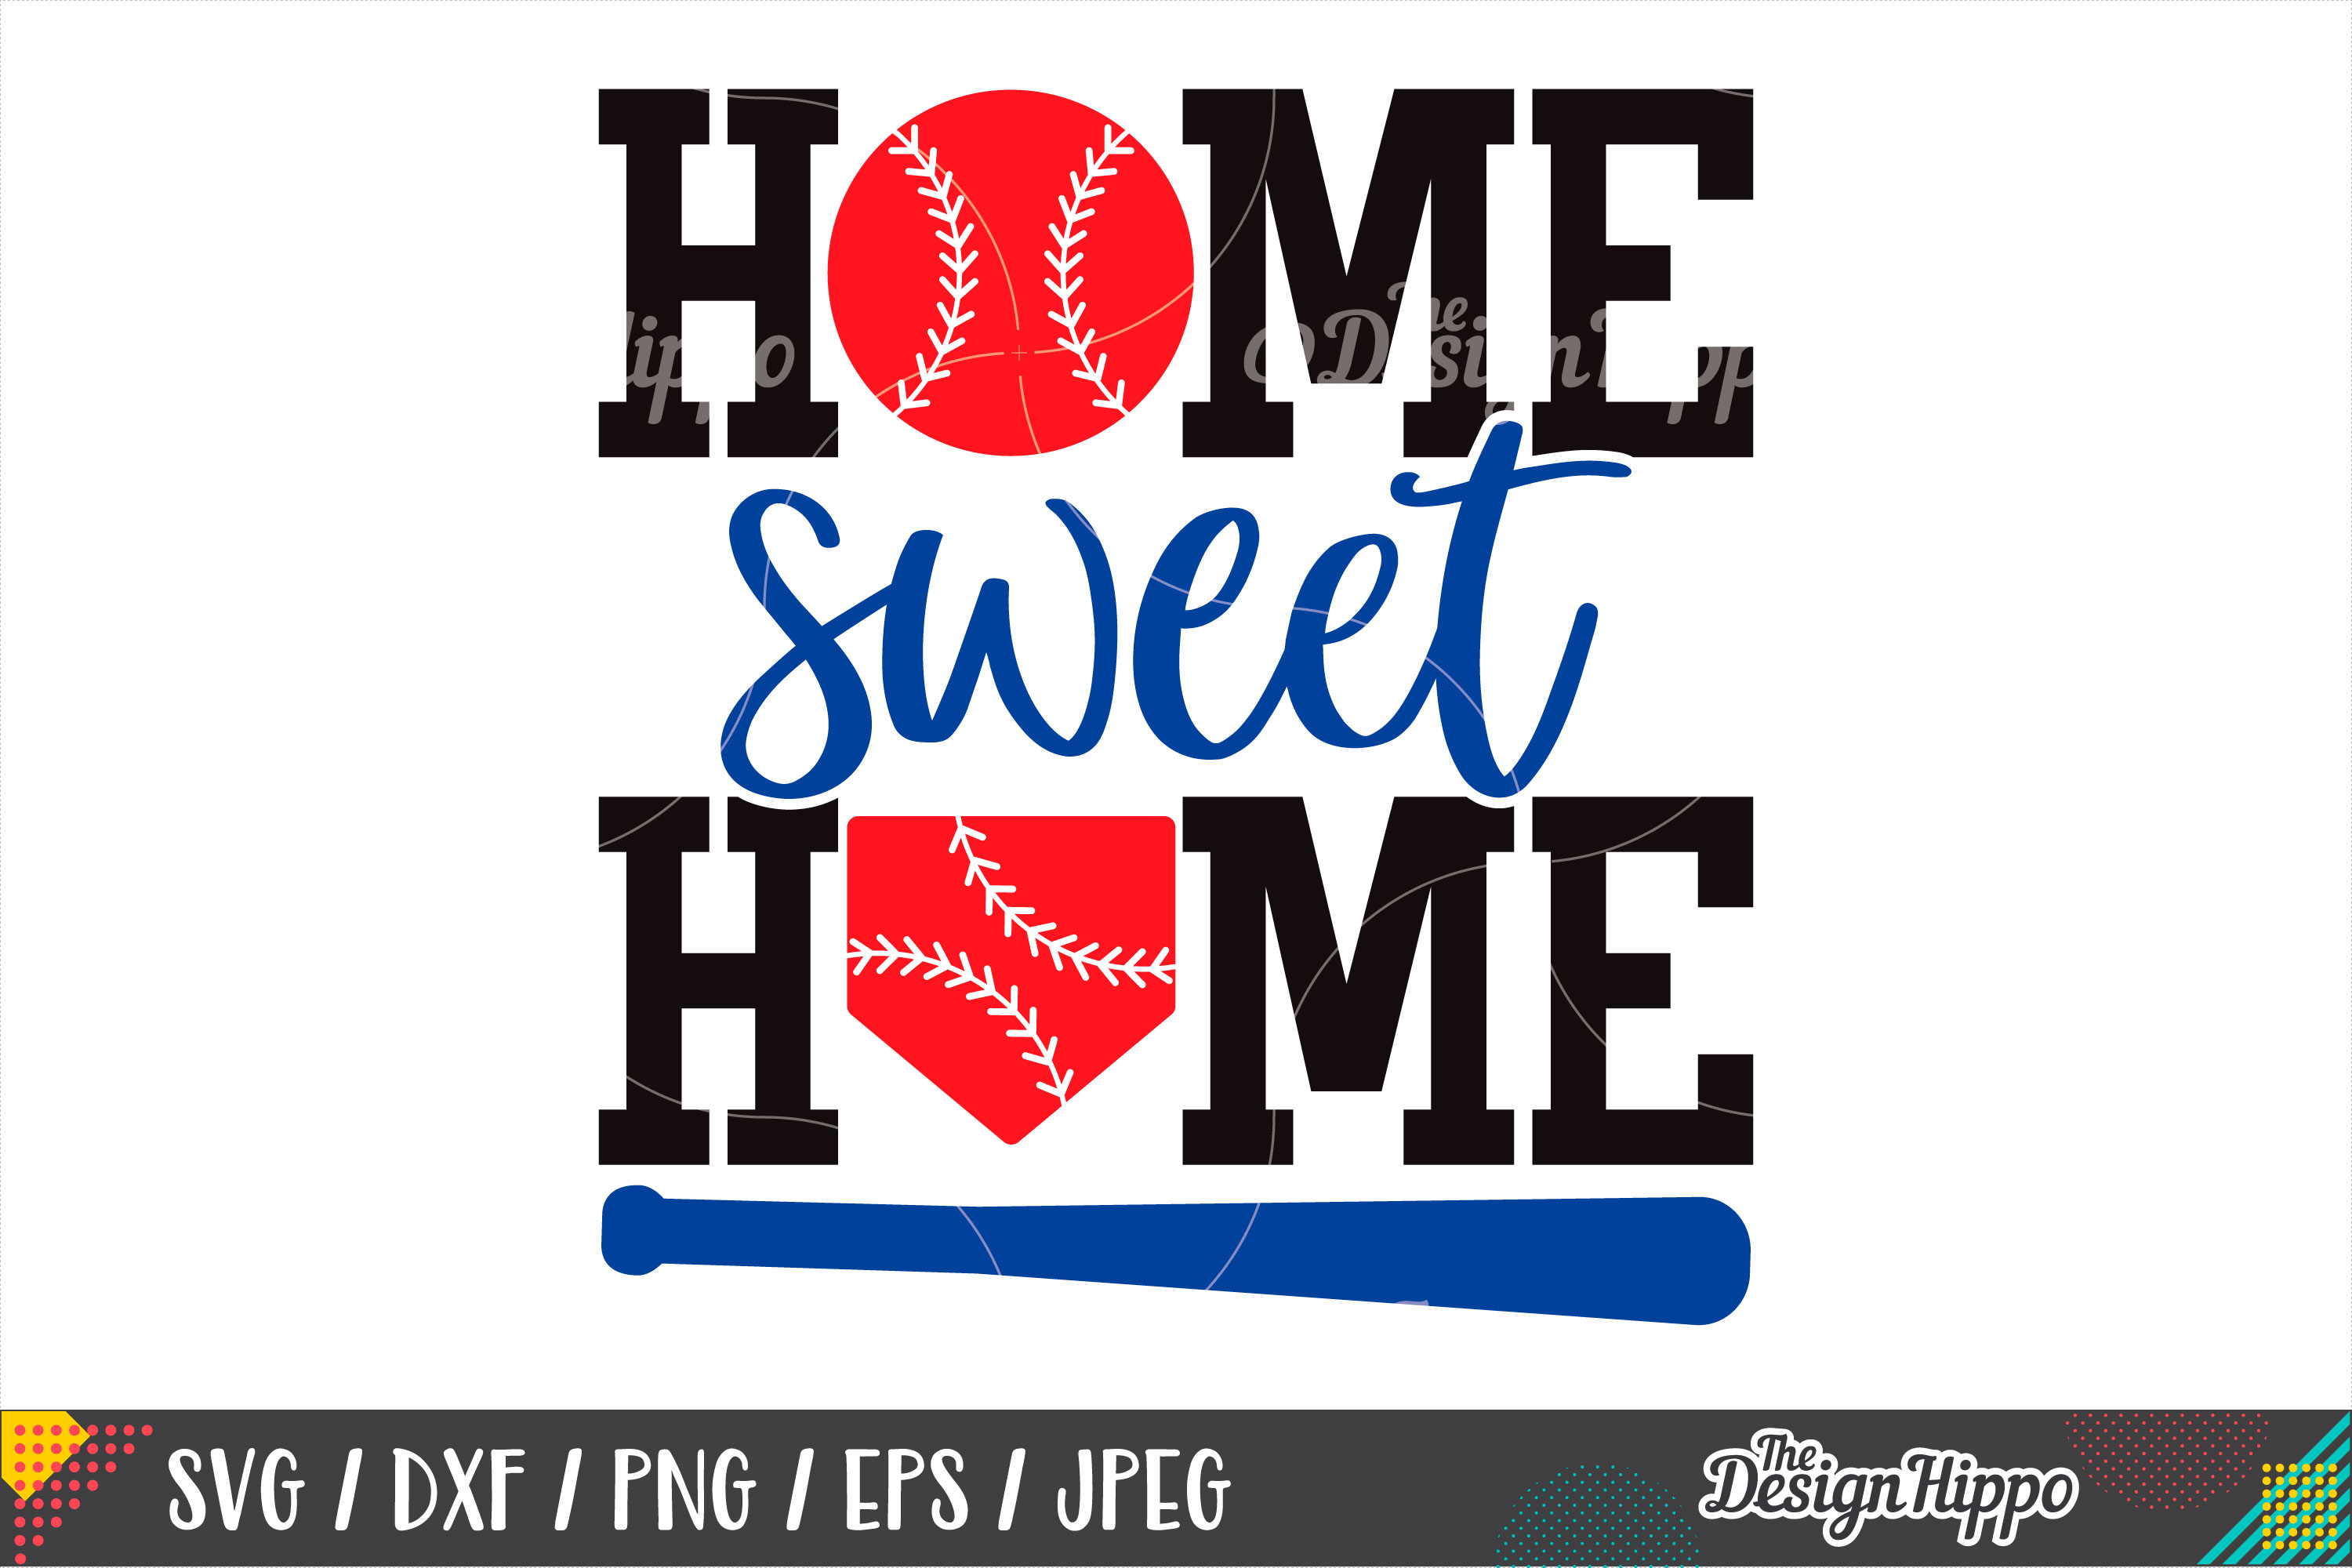 Home Sweet Home SVG, Baseball SVG, Home Plate SVG, DXF, PNG example image 1